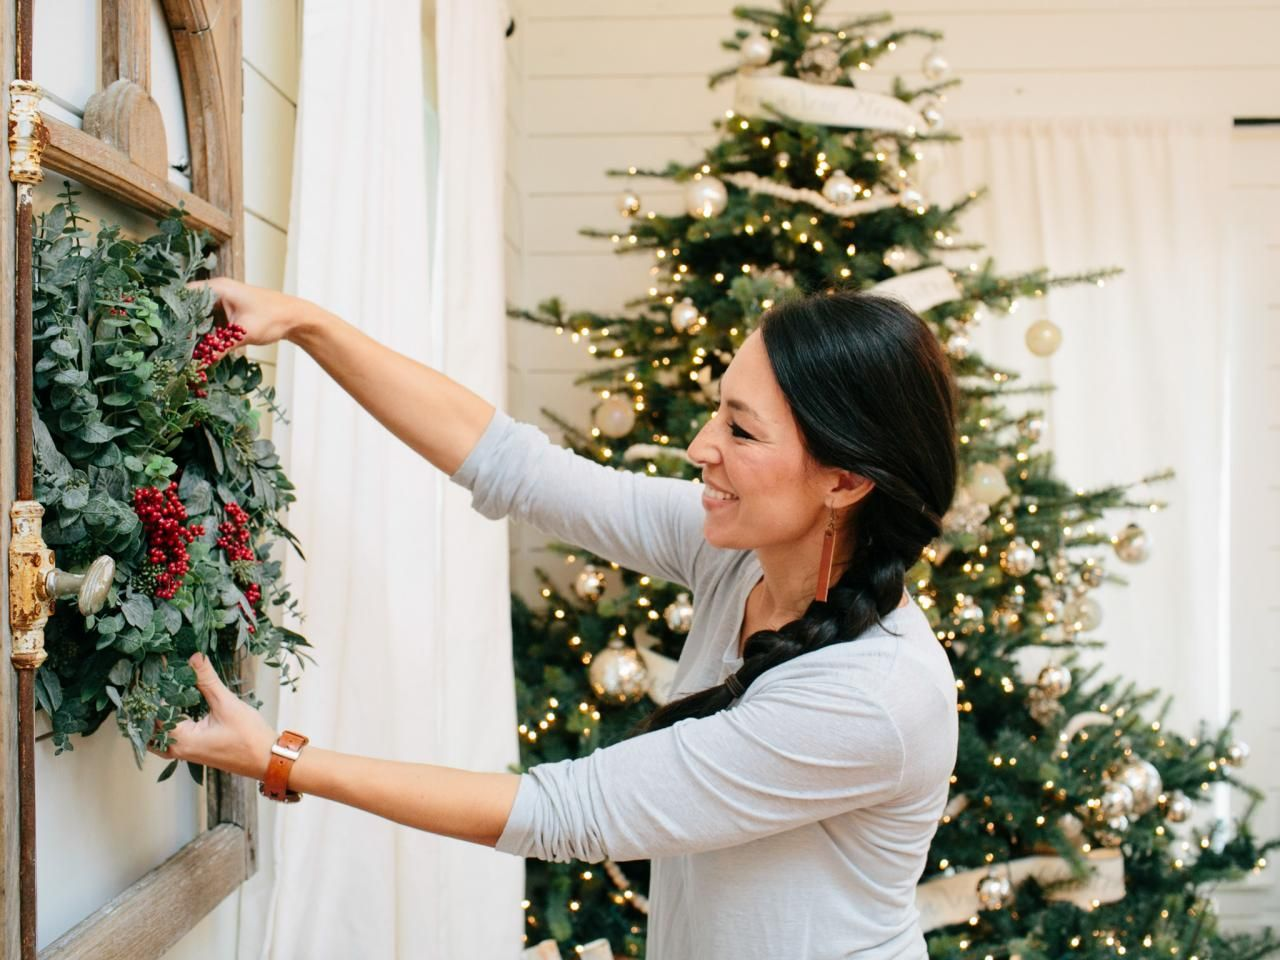 Joanna Gaines Farmhouse Christmas Decor Puts All The Warmth Into Holidays We Are